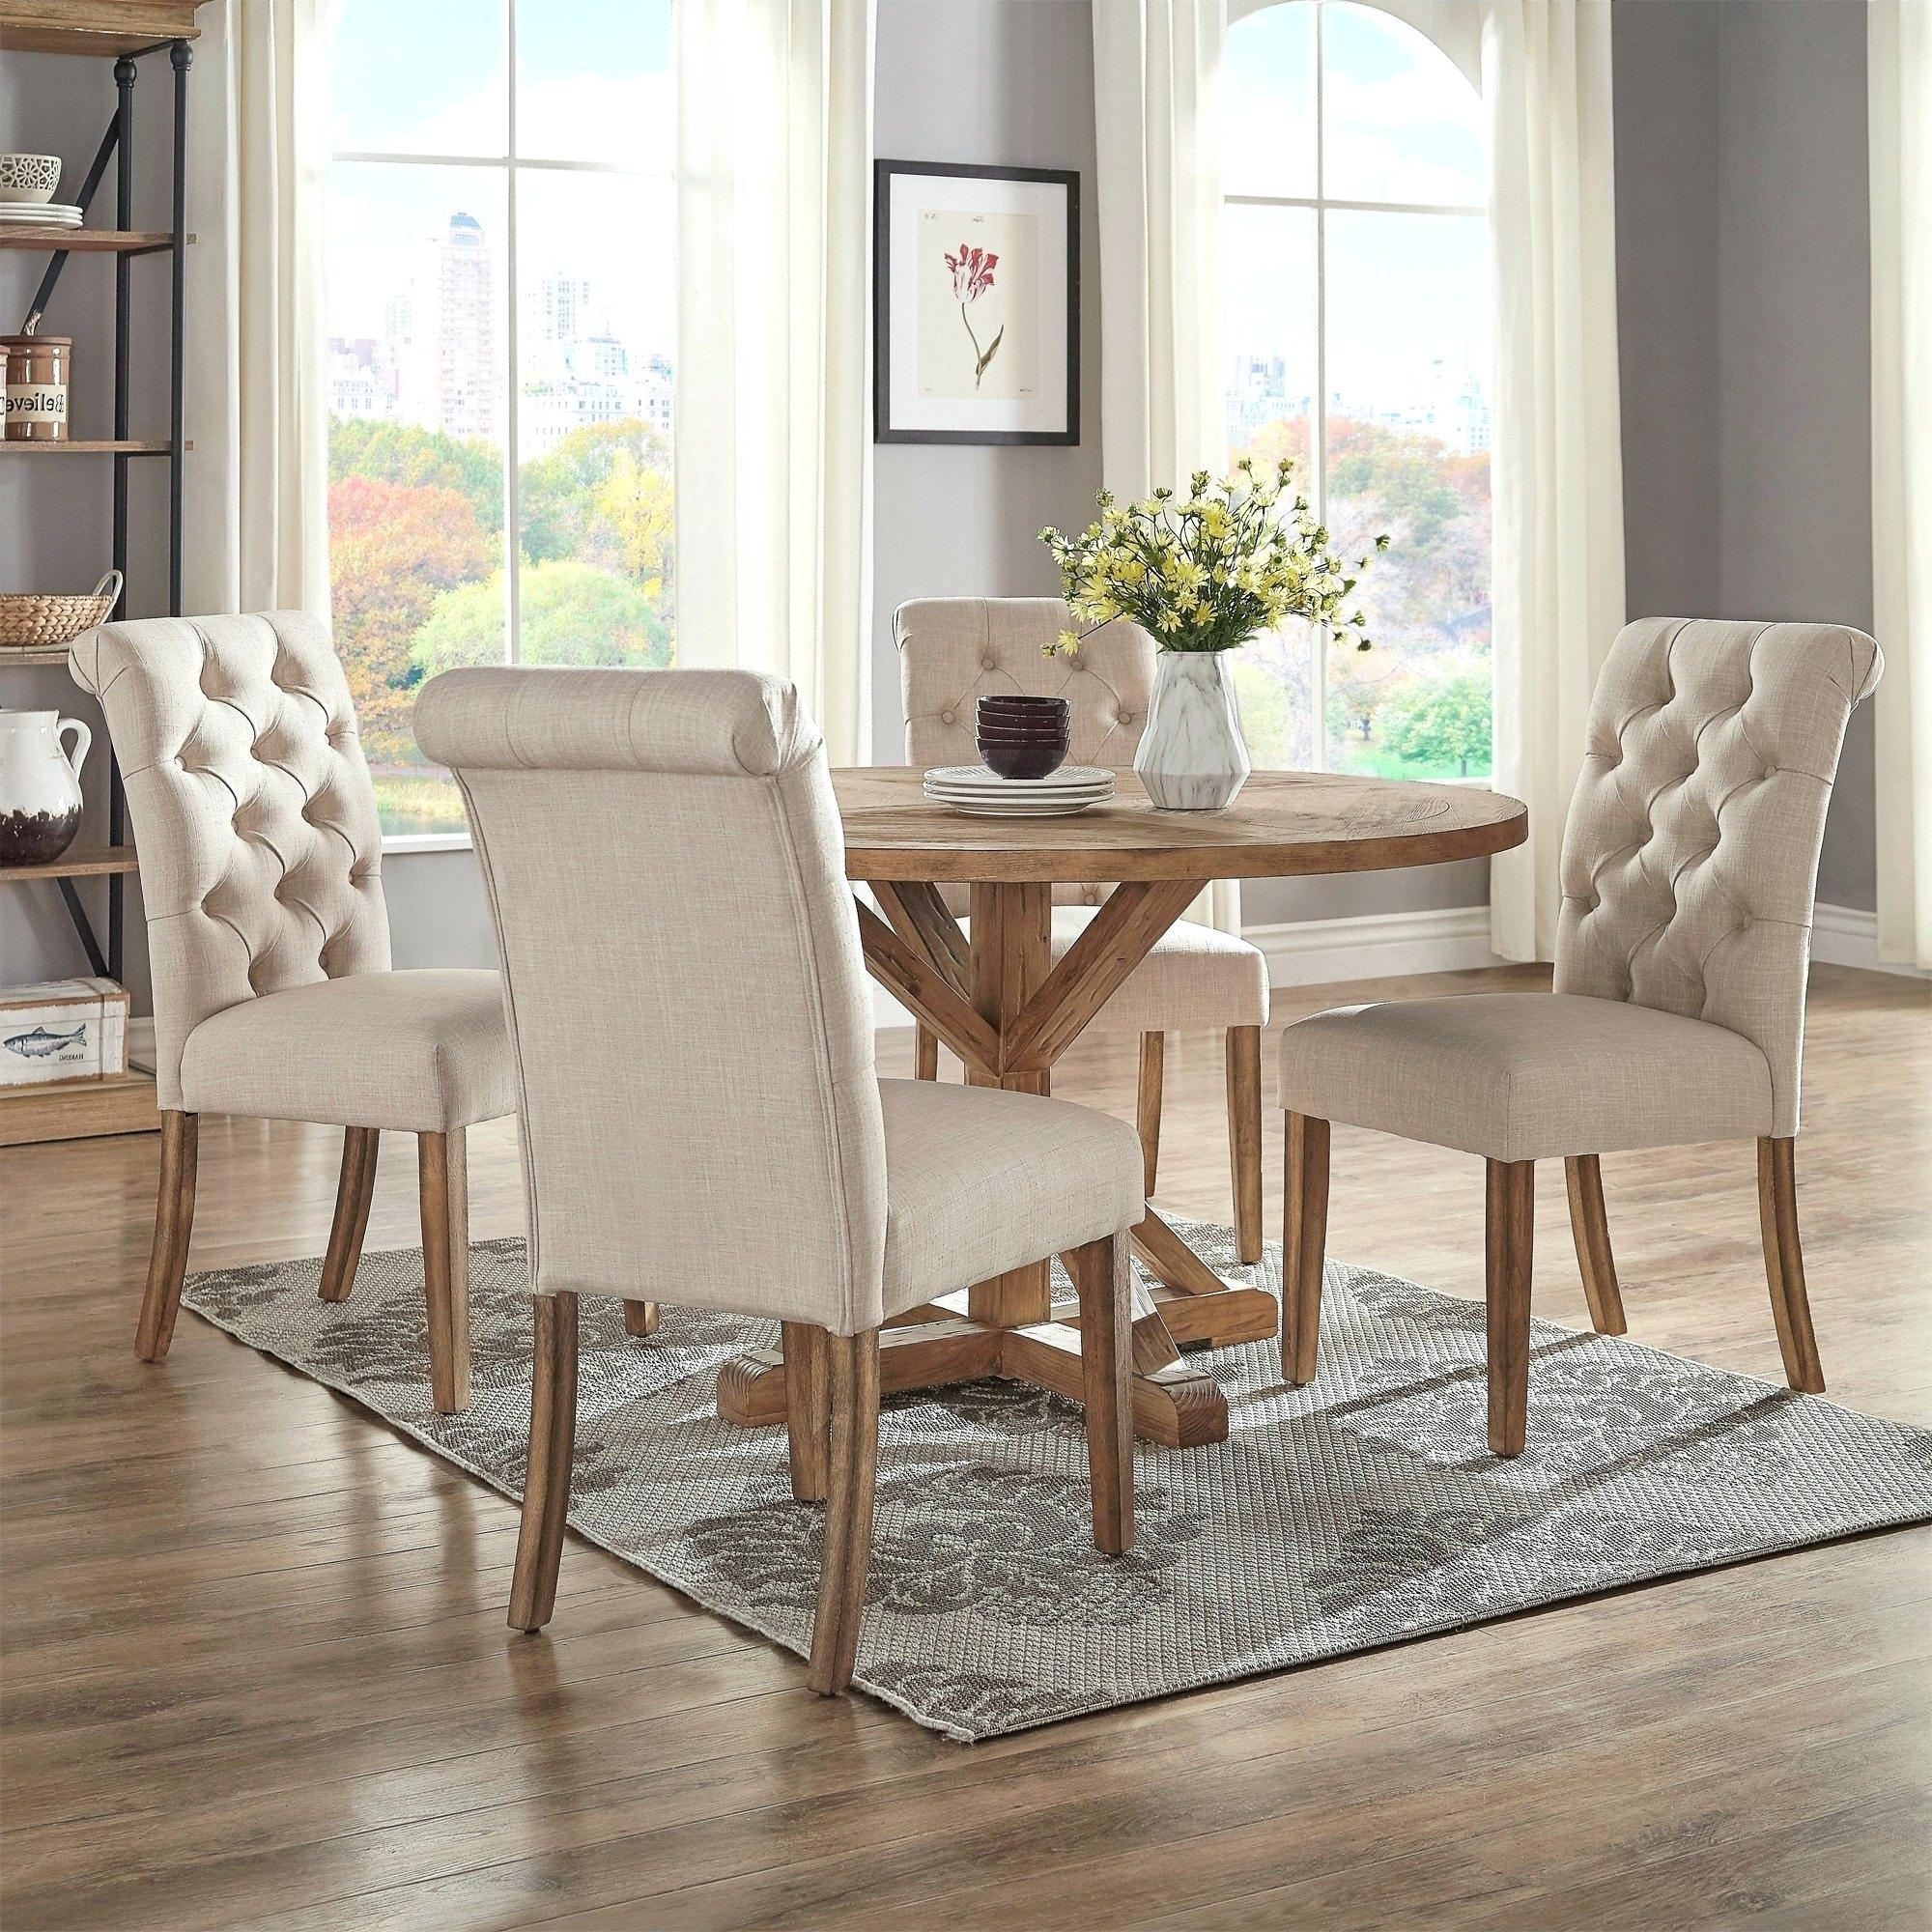 Jarrod 5 Piece Dining Sets Regarding Recent Cheap Dining Table Sets Walmart (View 11 of 20)